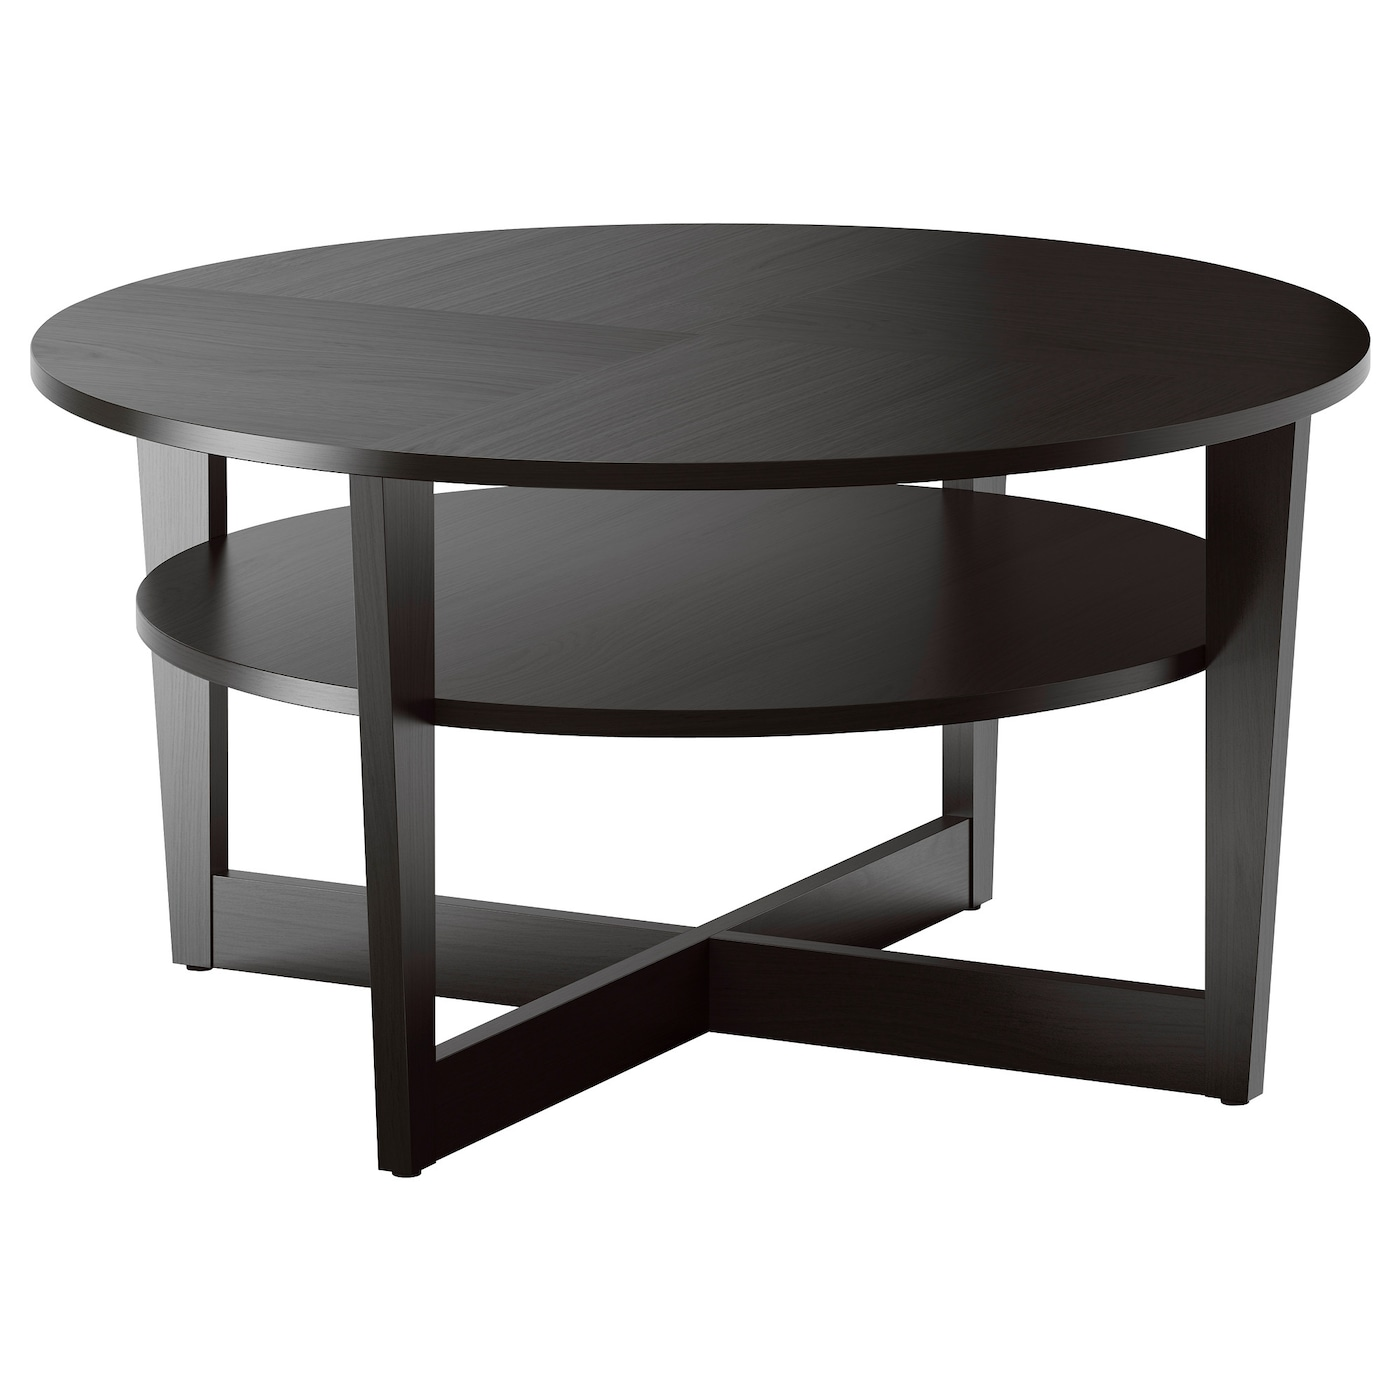 vejmon coffee table black brown 90 cm ikea. Black Bedroom Furniture Sets. Home Design Ideas